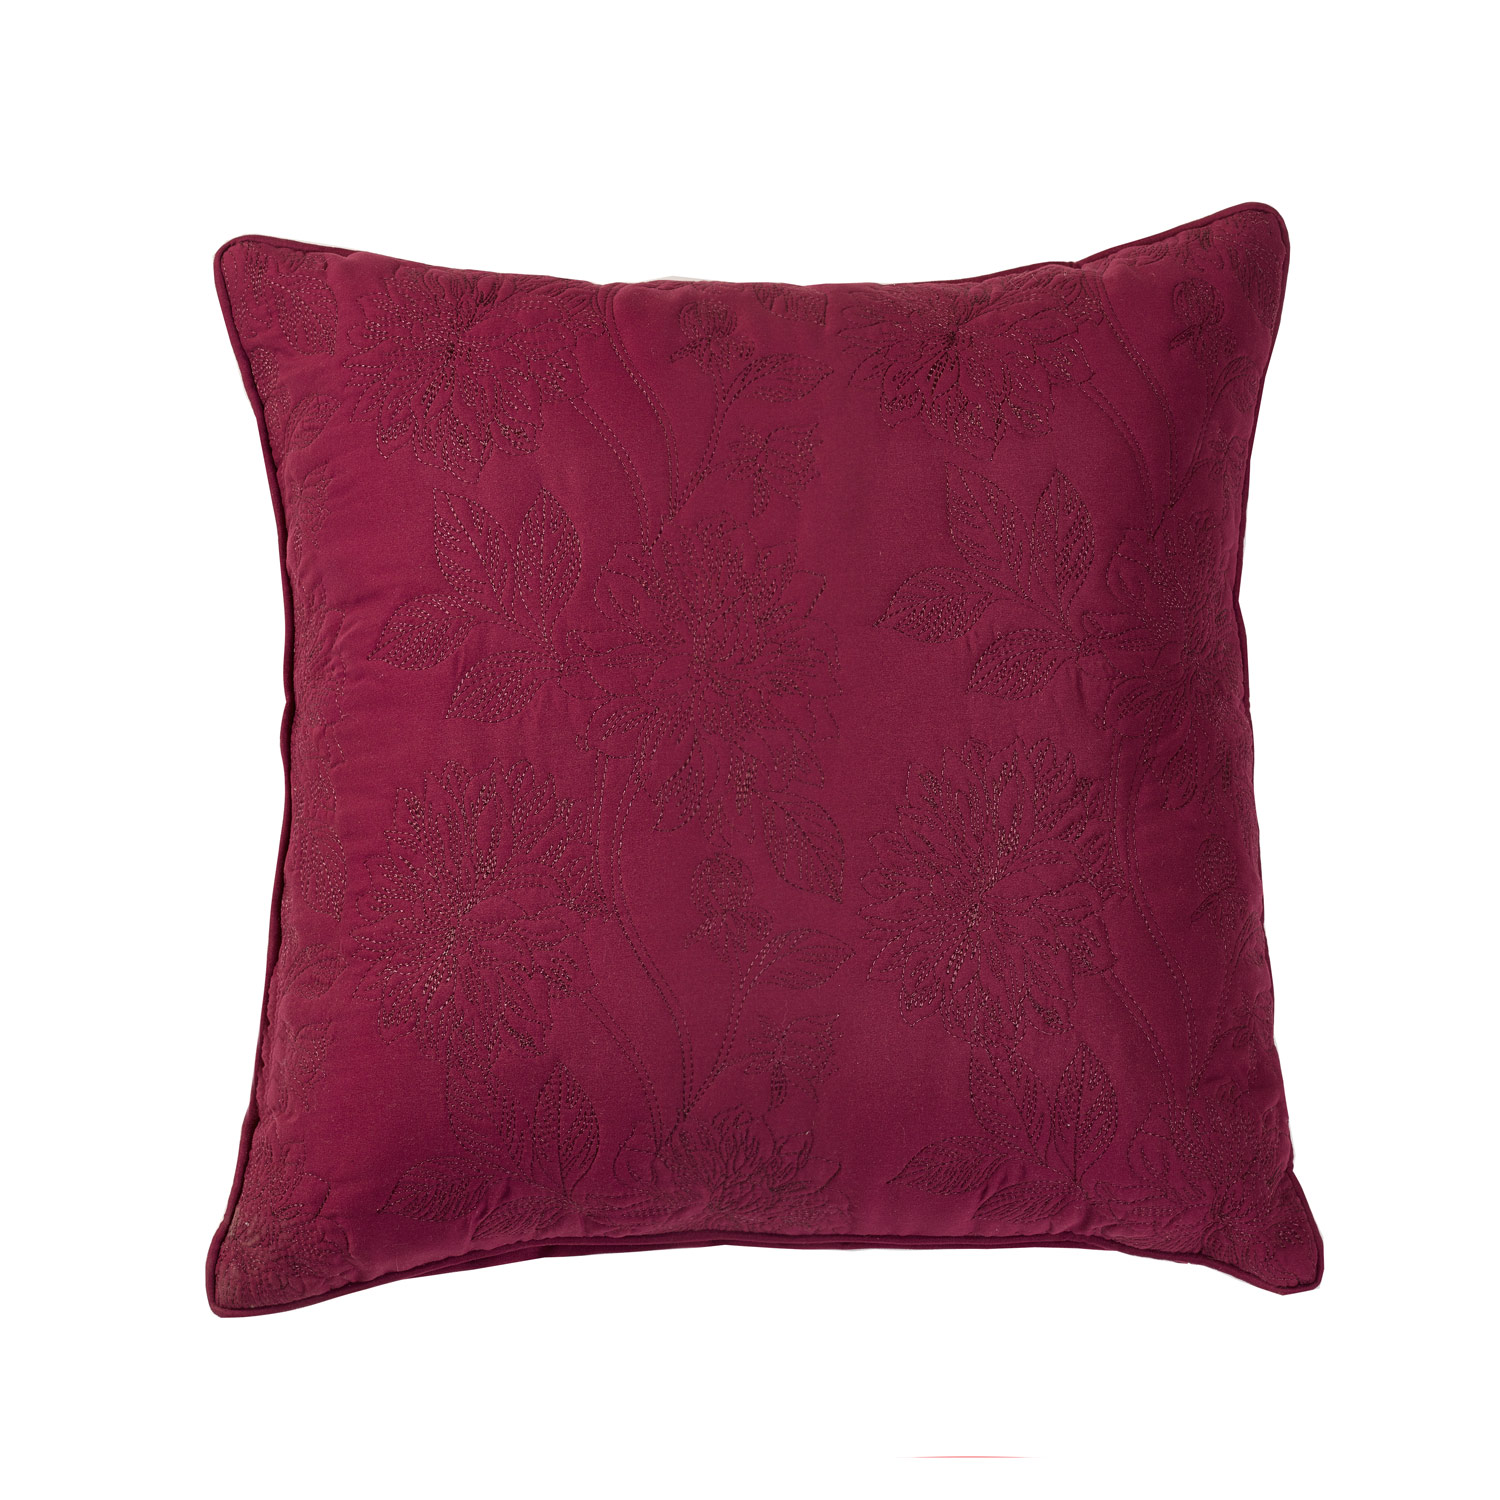 Stockists of Annabelle Raspberry Filled Square Cushion